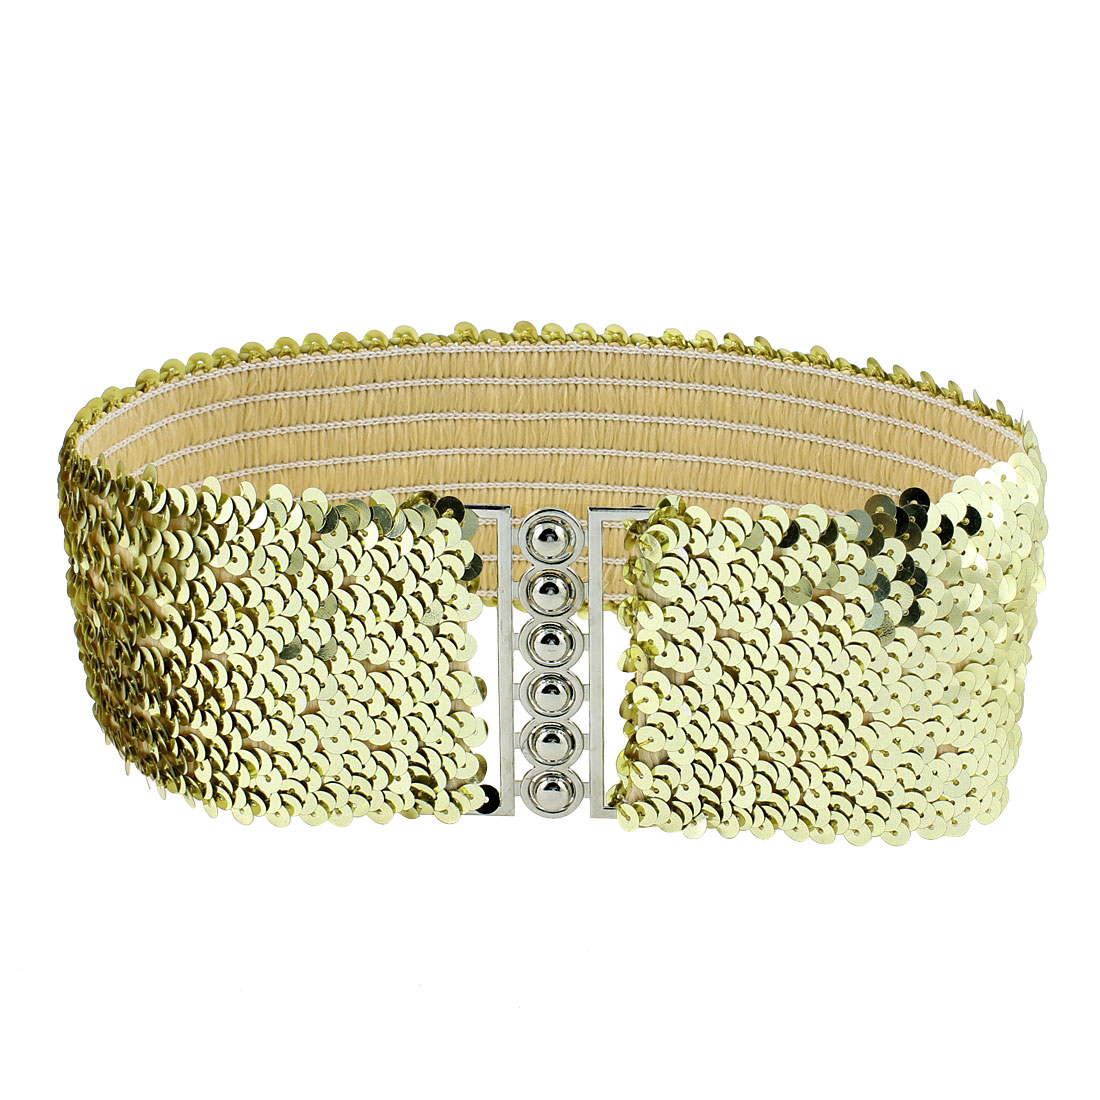 Sequin Decor Strentch 6.5cm Wide Waistbelt Cinch Waist Belt Gold Tone for Lady